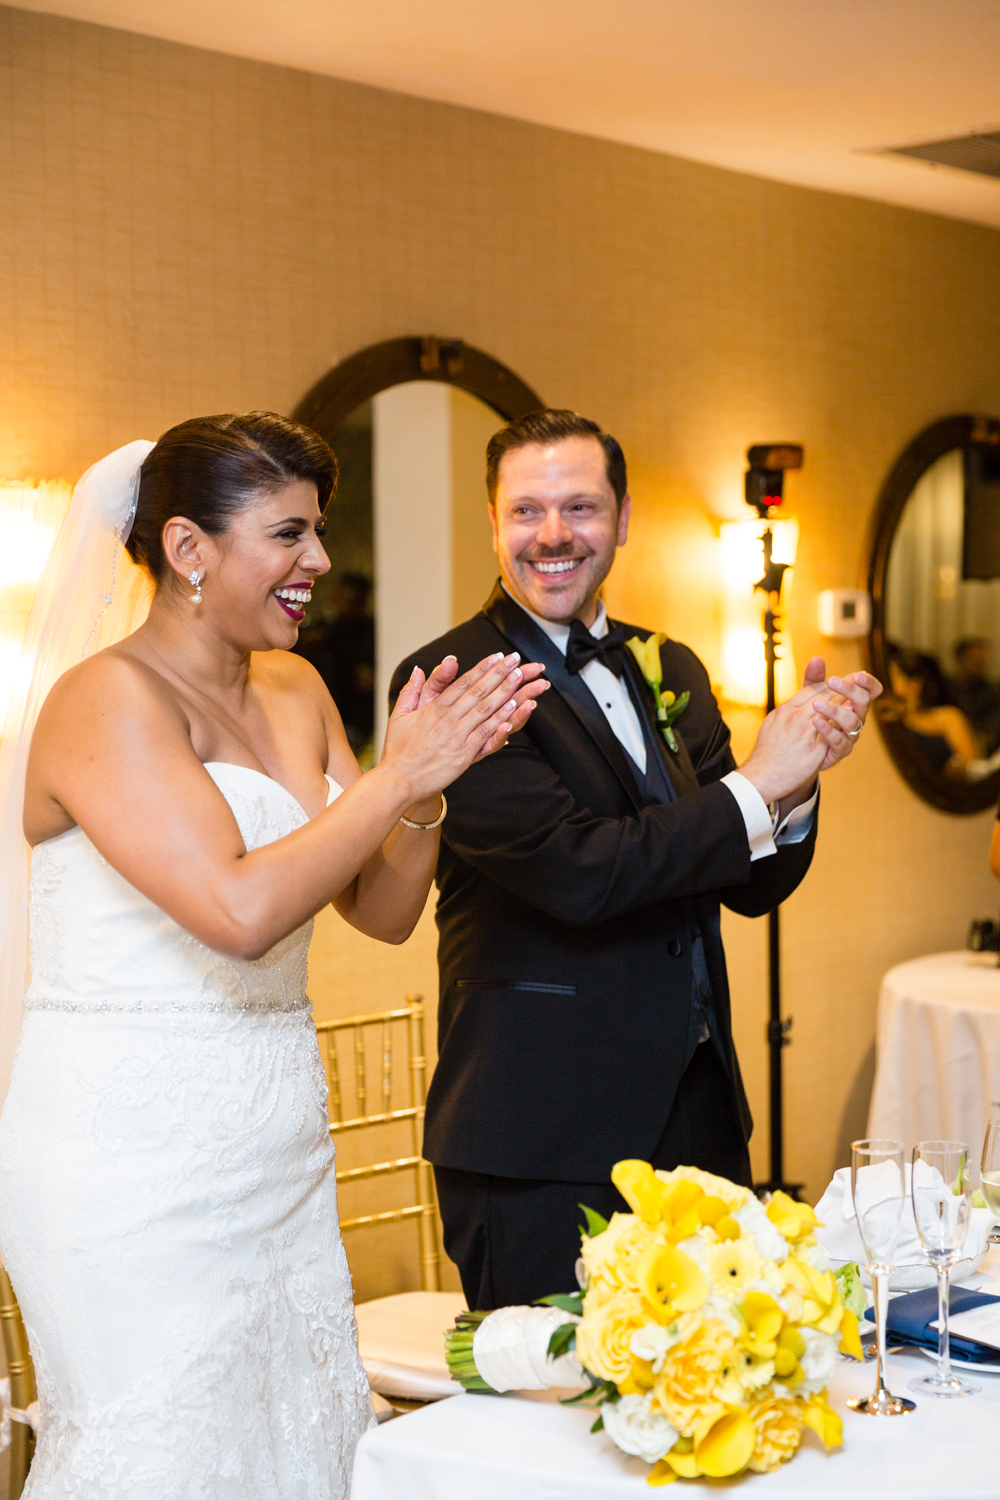 54706-lively-navy-yellow-harbor-wedding-bride-and-groom-enjoying-entertainment.jpg